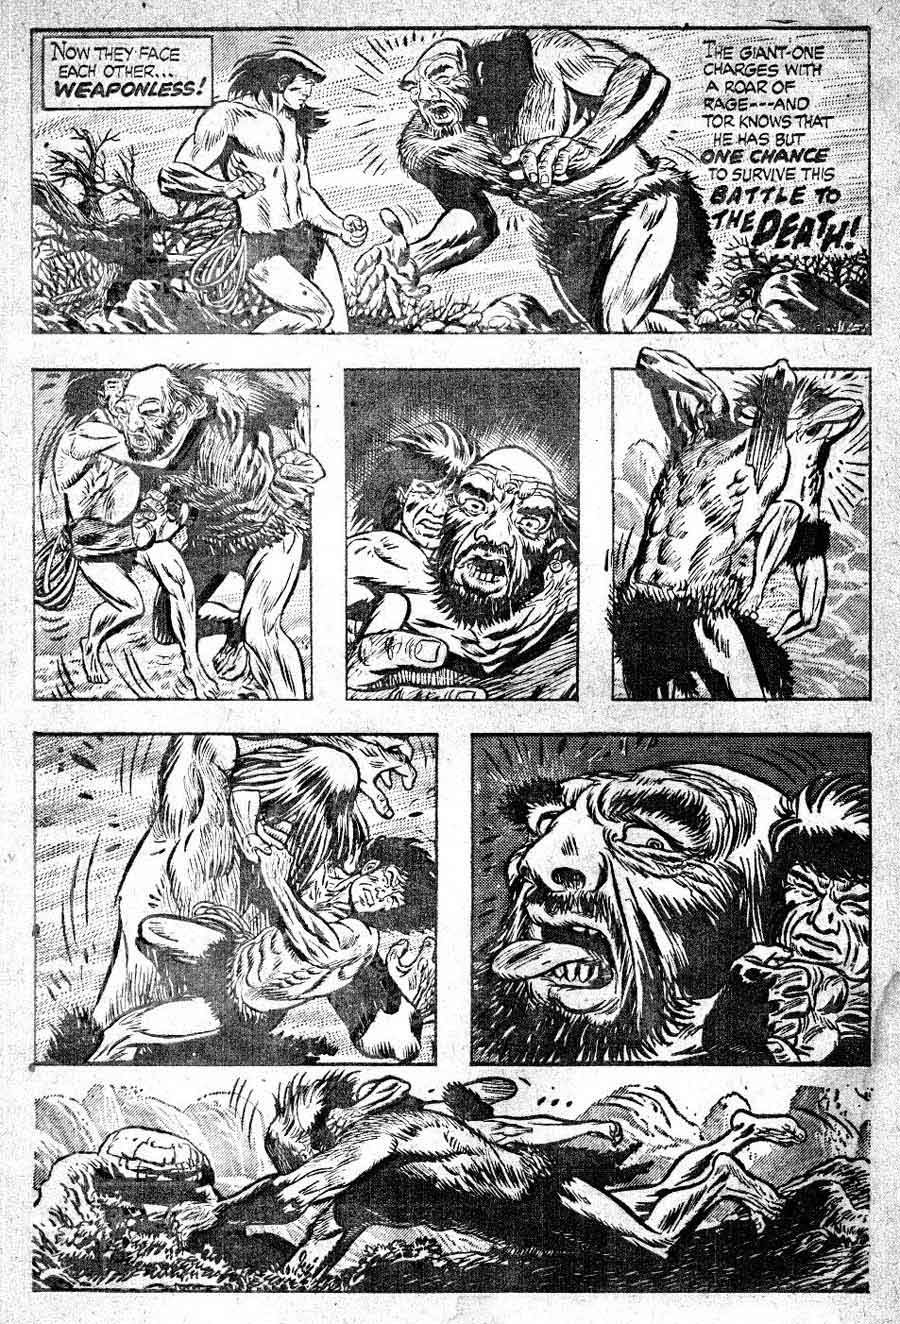 Tor v1 #2B st john golden age comic book page art by Joe Kubert